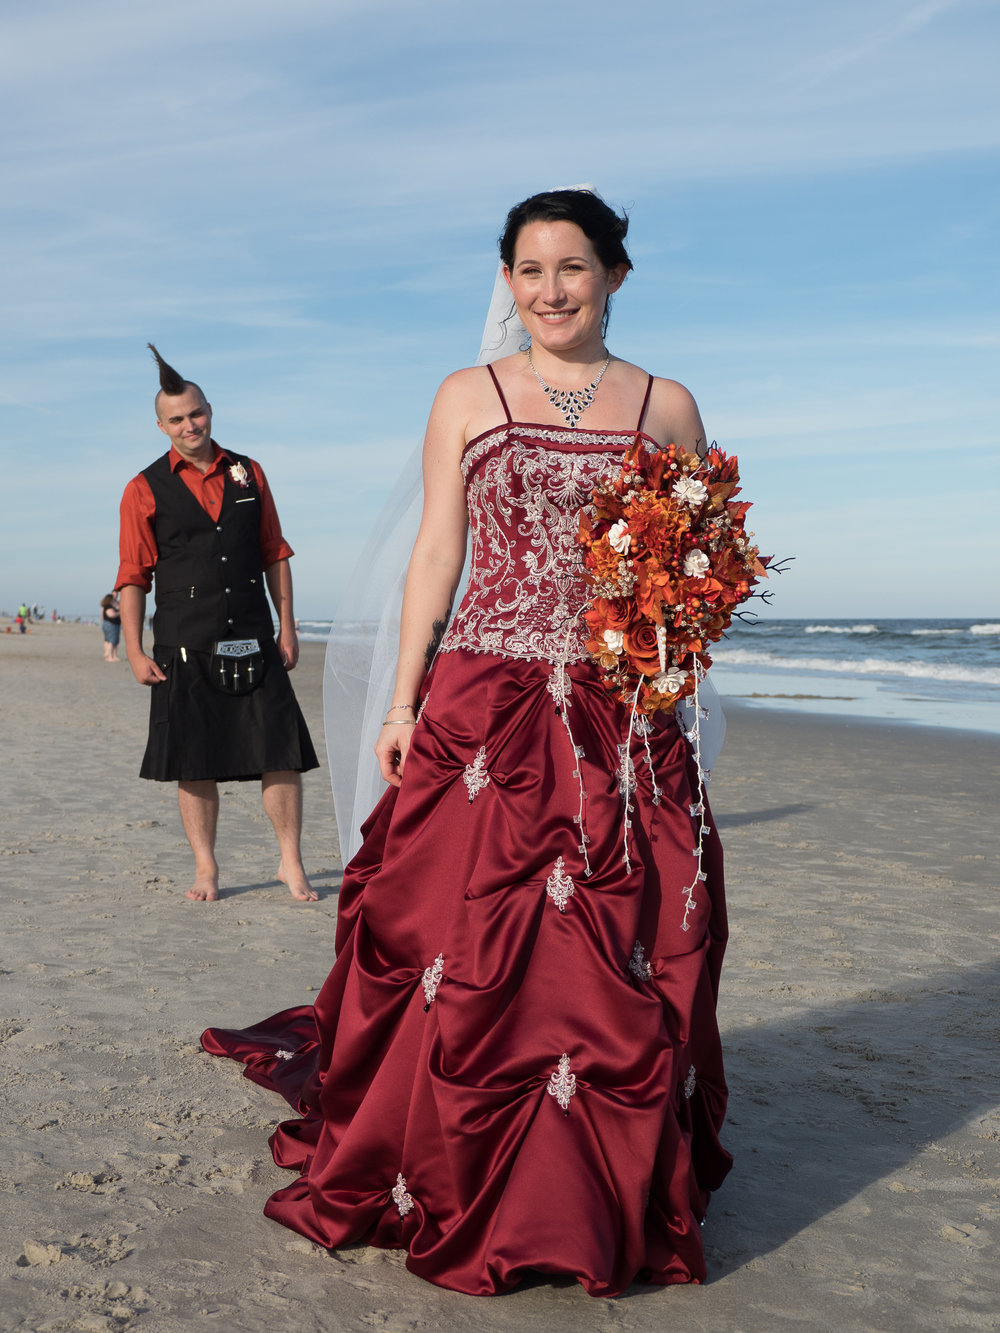 Red - A very beautiful bride in very non-traditional dress at a beach wedding with her equally non-traditional husband in the back. Carolina Beach, NC.